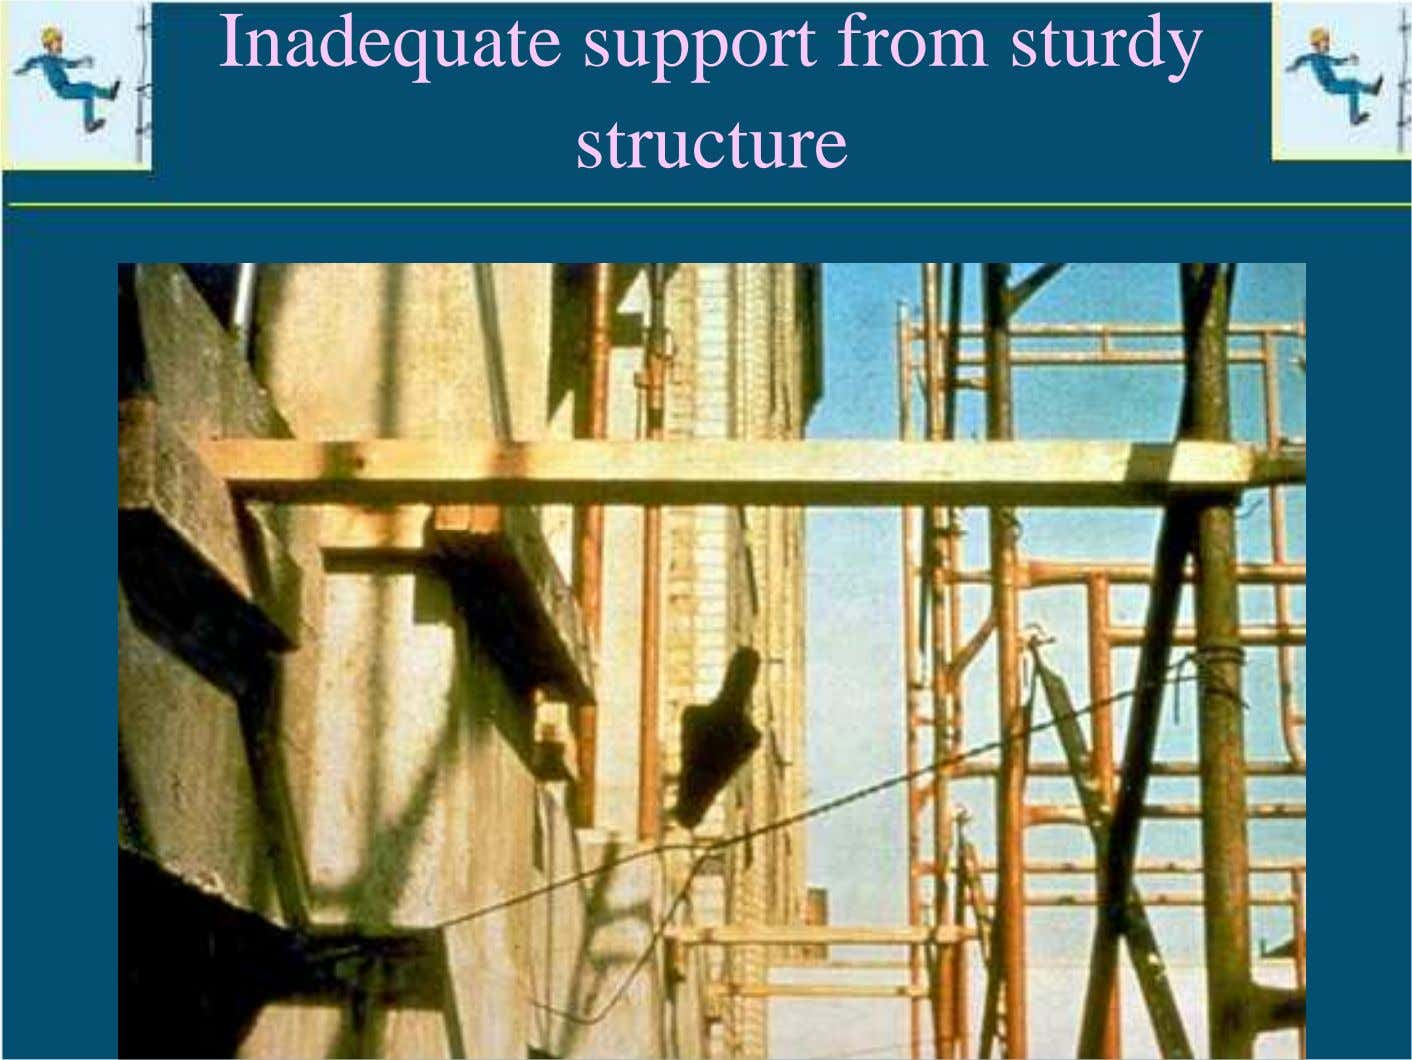 Inadequate support from sturdy structure